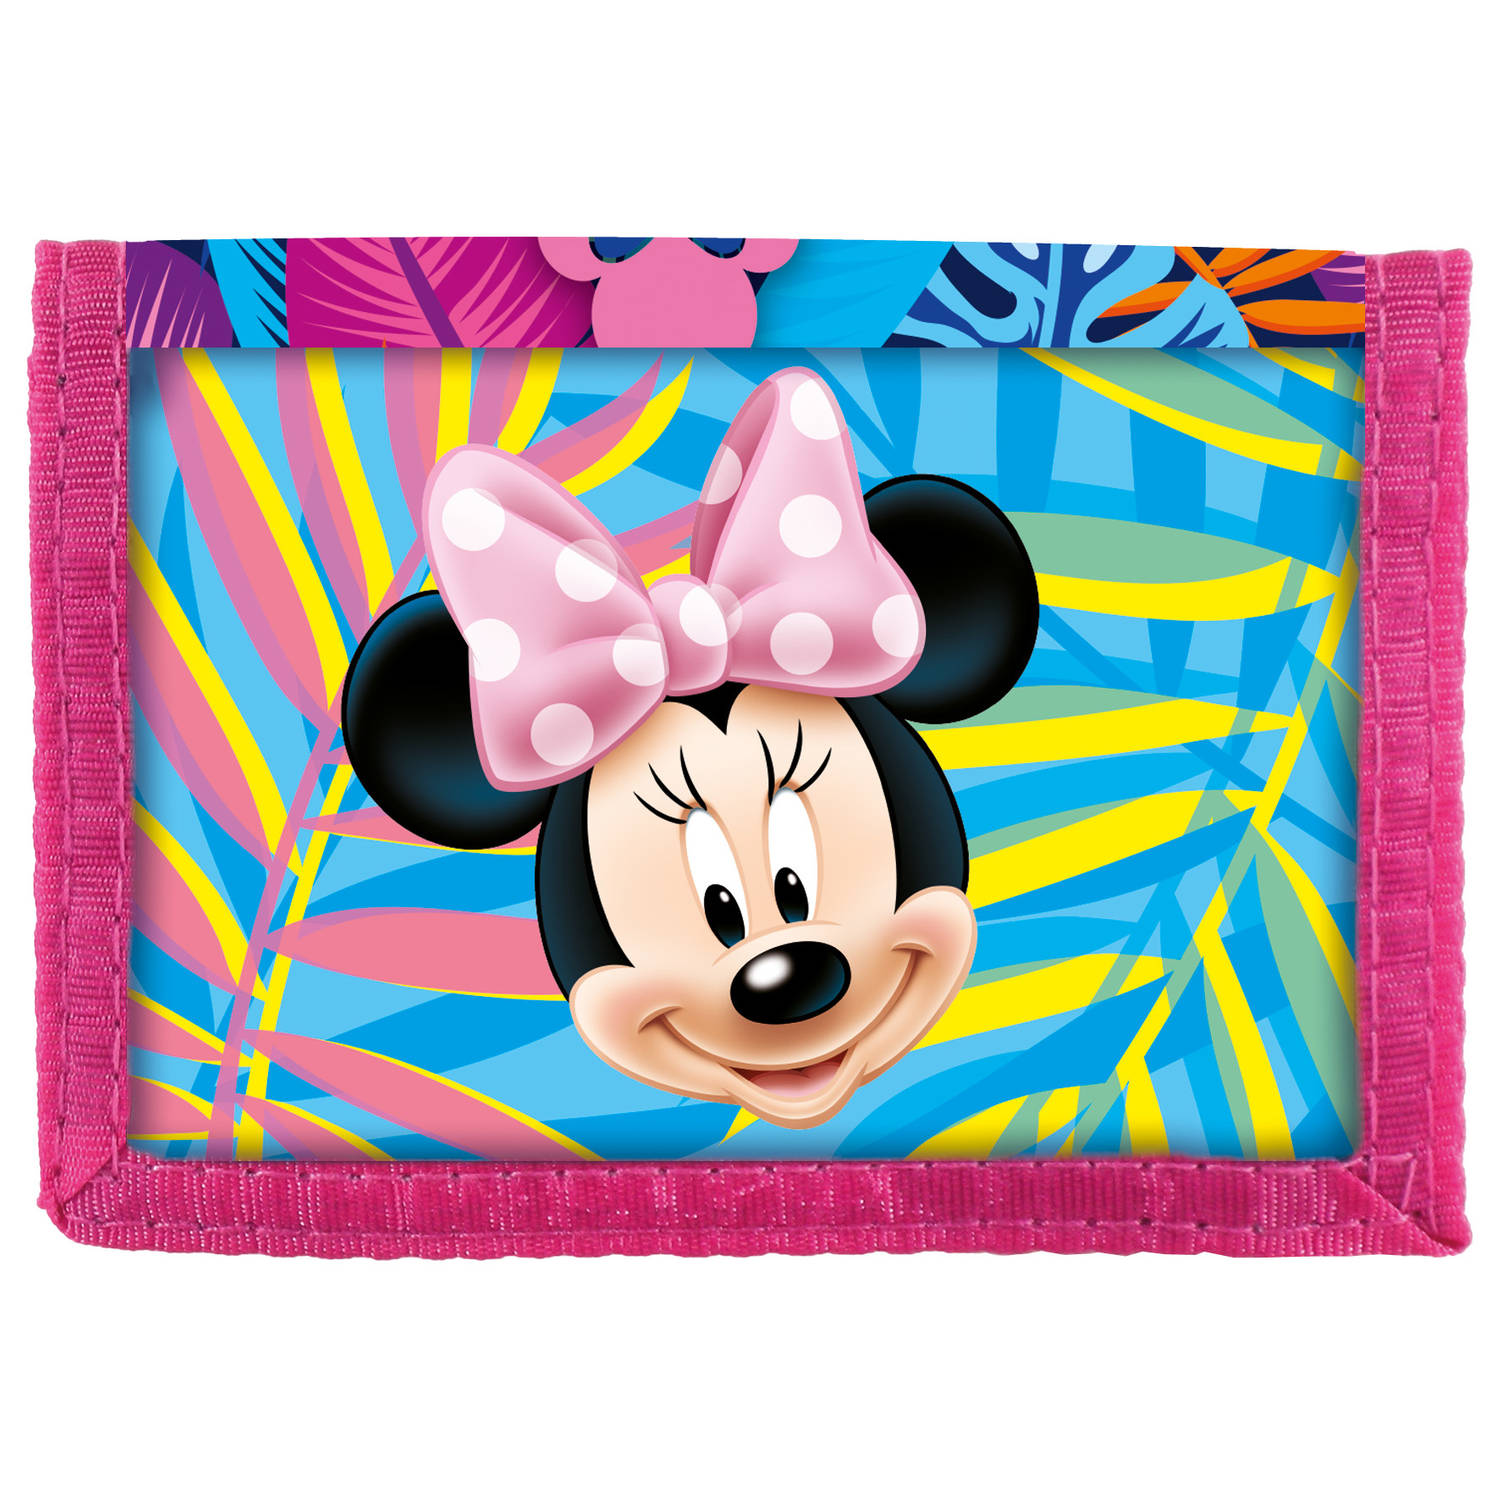 Disney Minnie Mouse Spring Palms - Portemonnee - 12.5 x 8.5 cm - Multi